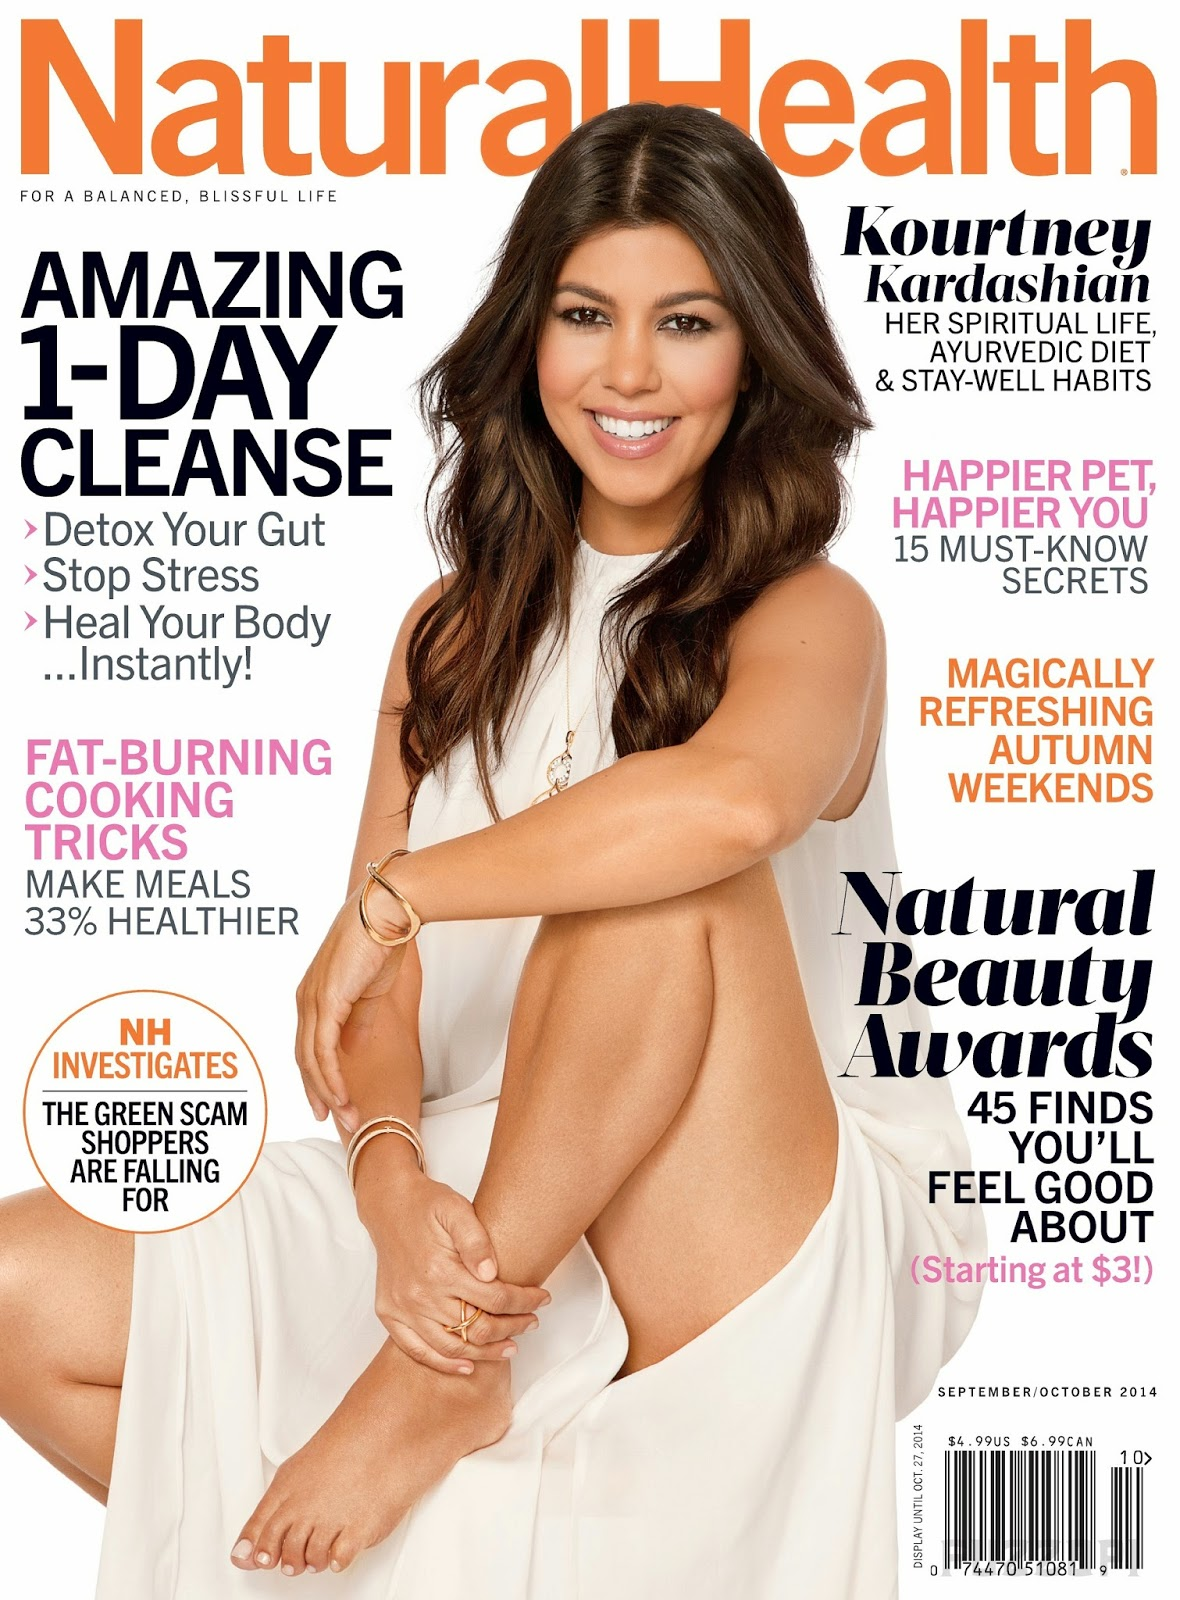 Kourtney Kardashian - Natural Health Magazine, September/October 2014